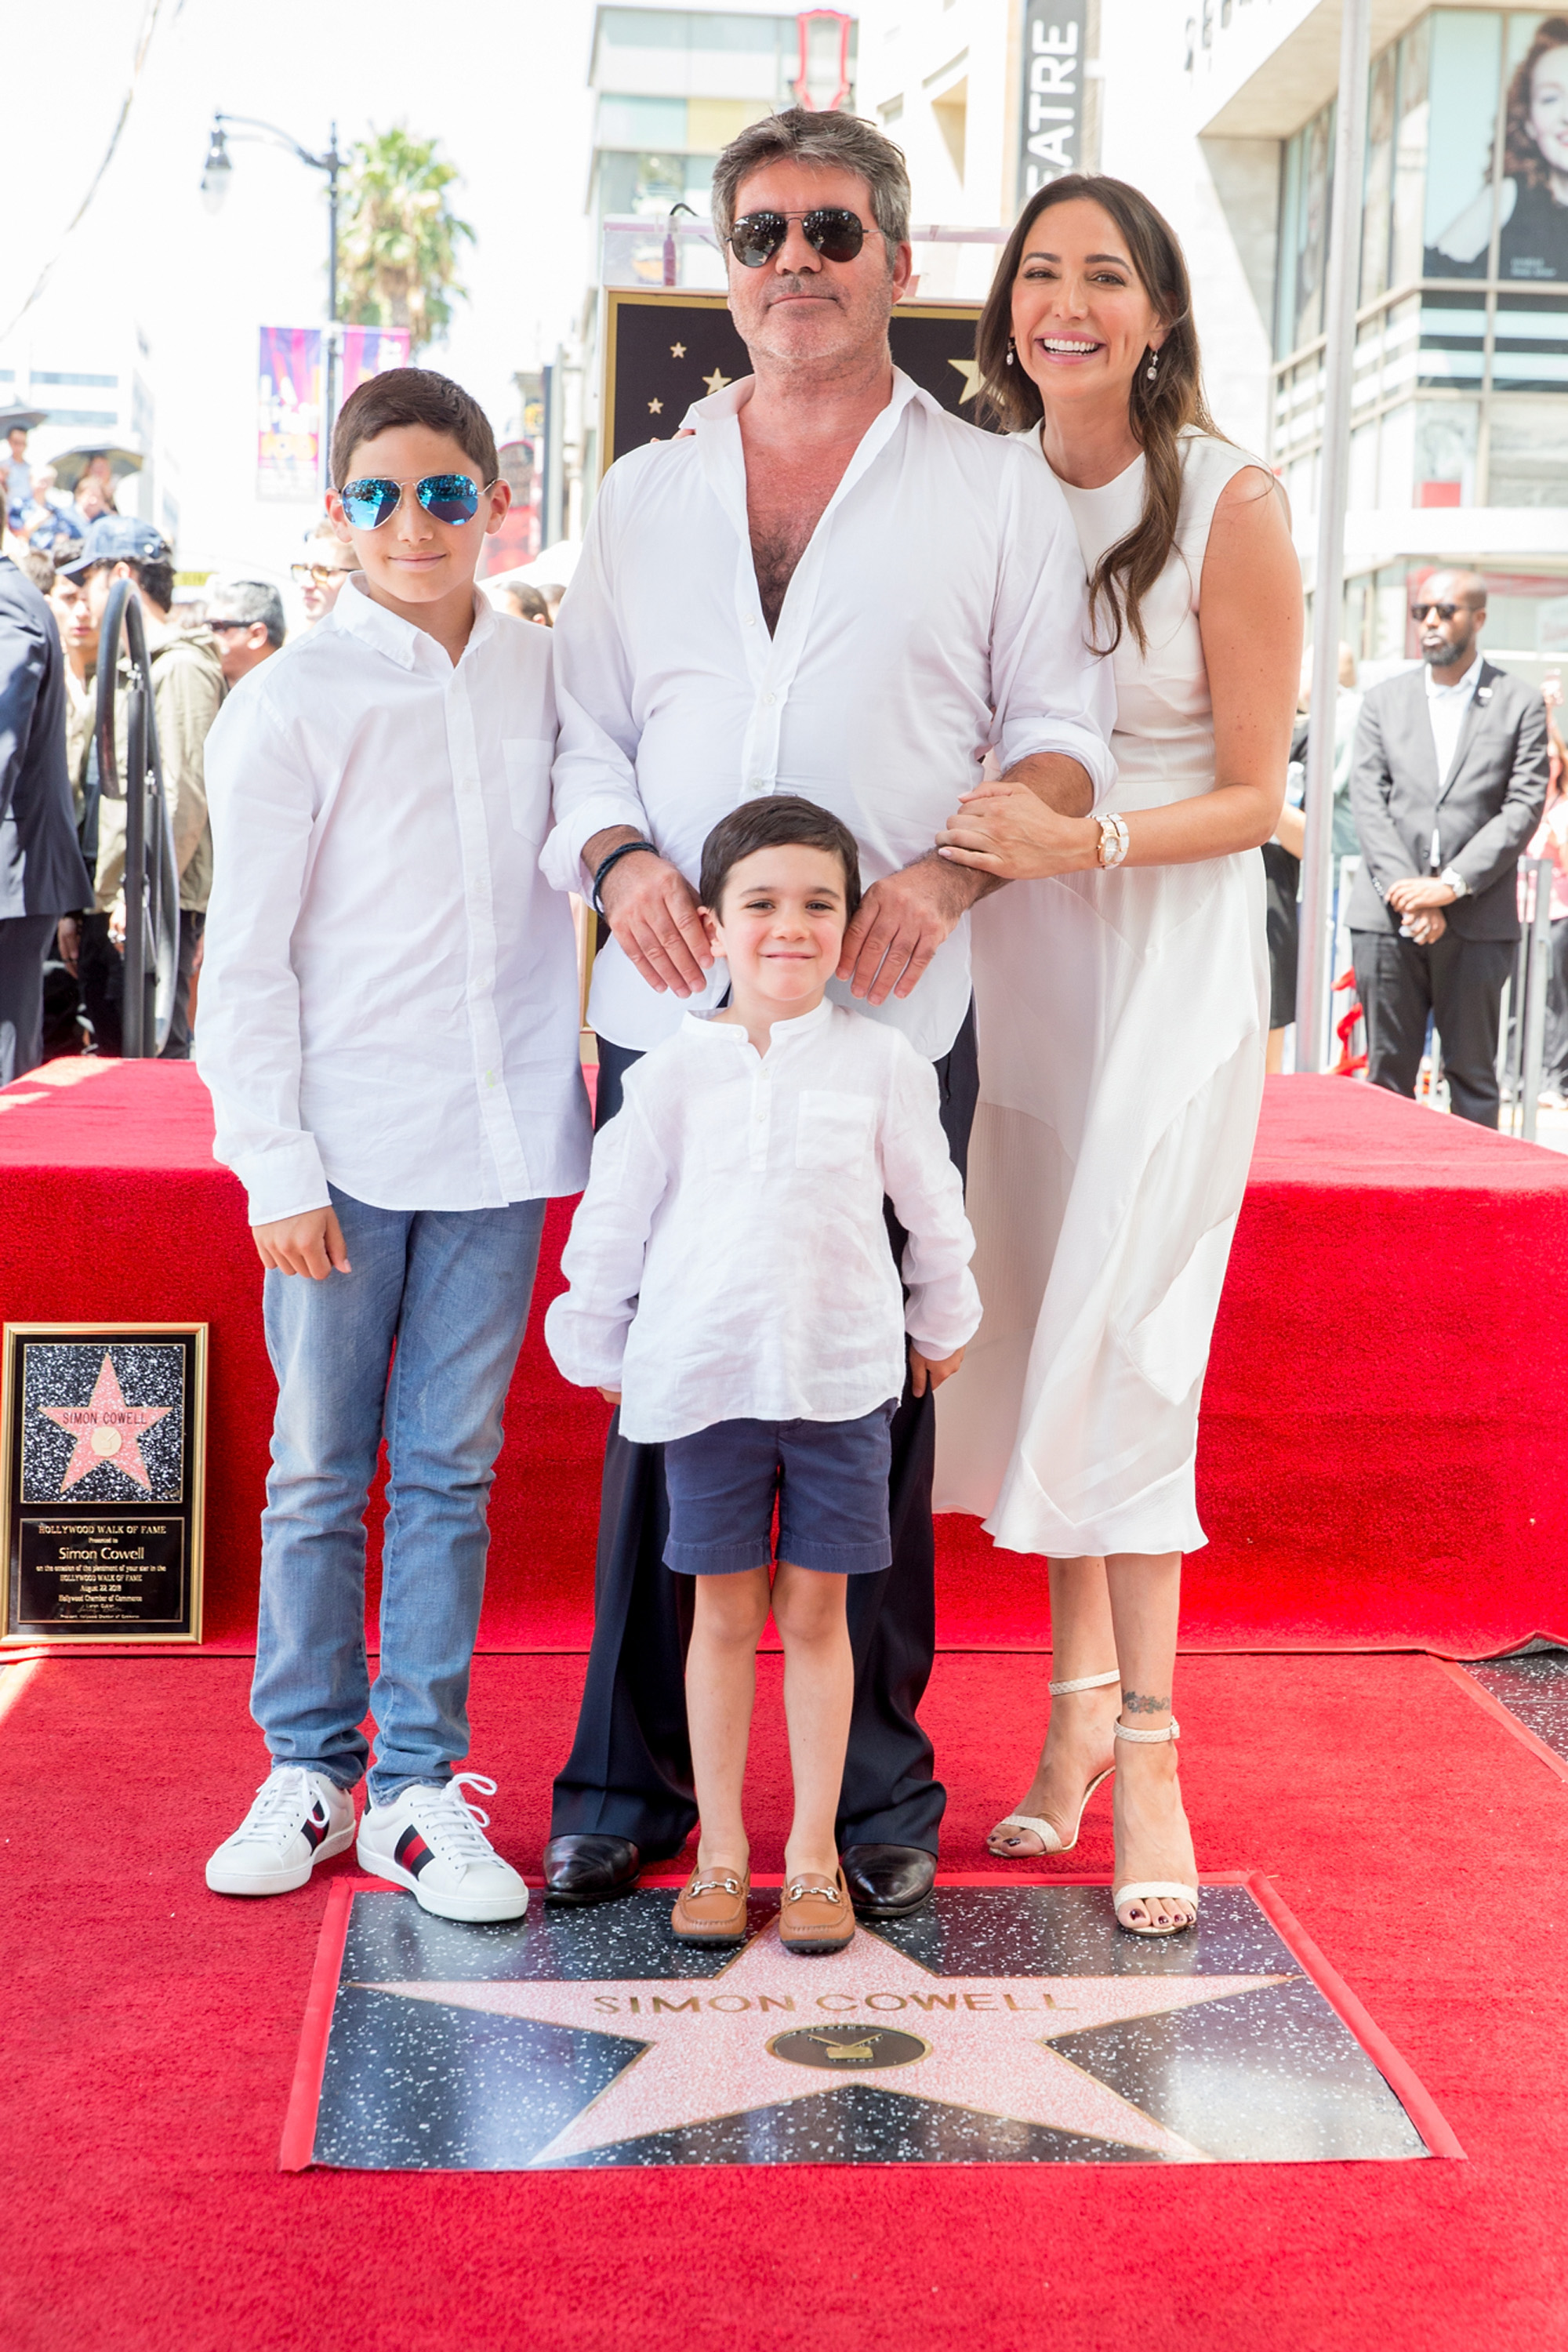 Eric Cowell Simon Cowell S Son 5 Fast Facts You Need To Know Heavy Com